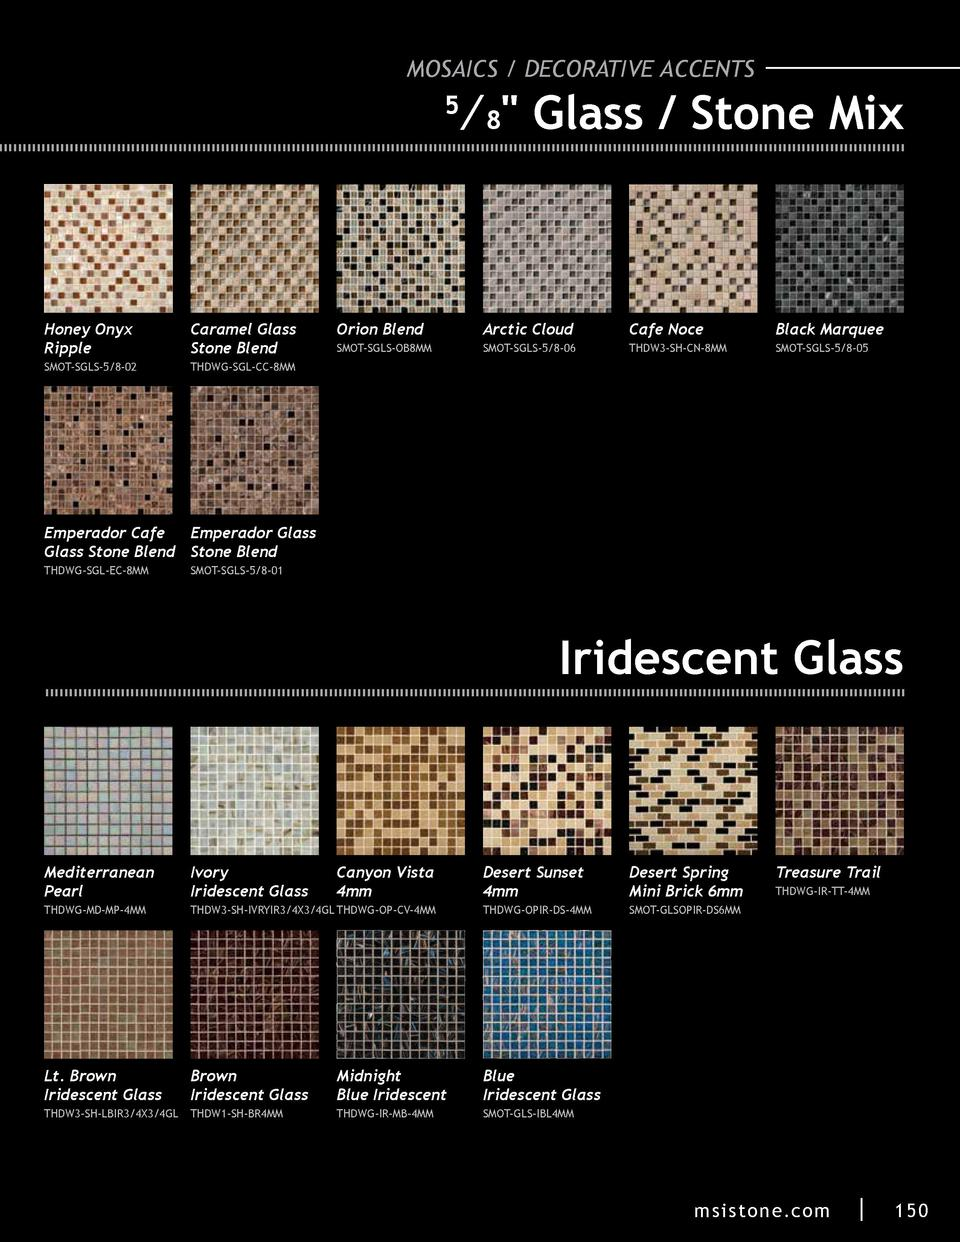 MOSAICS   DECORATIVE ACCENTS     8  Glass   Stone Mix  5  Honey Onyx Ripple  Caramel Glass Stone Blend  SMOT-SGLS-5 8-02  ...